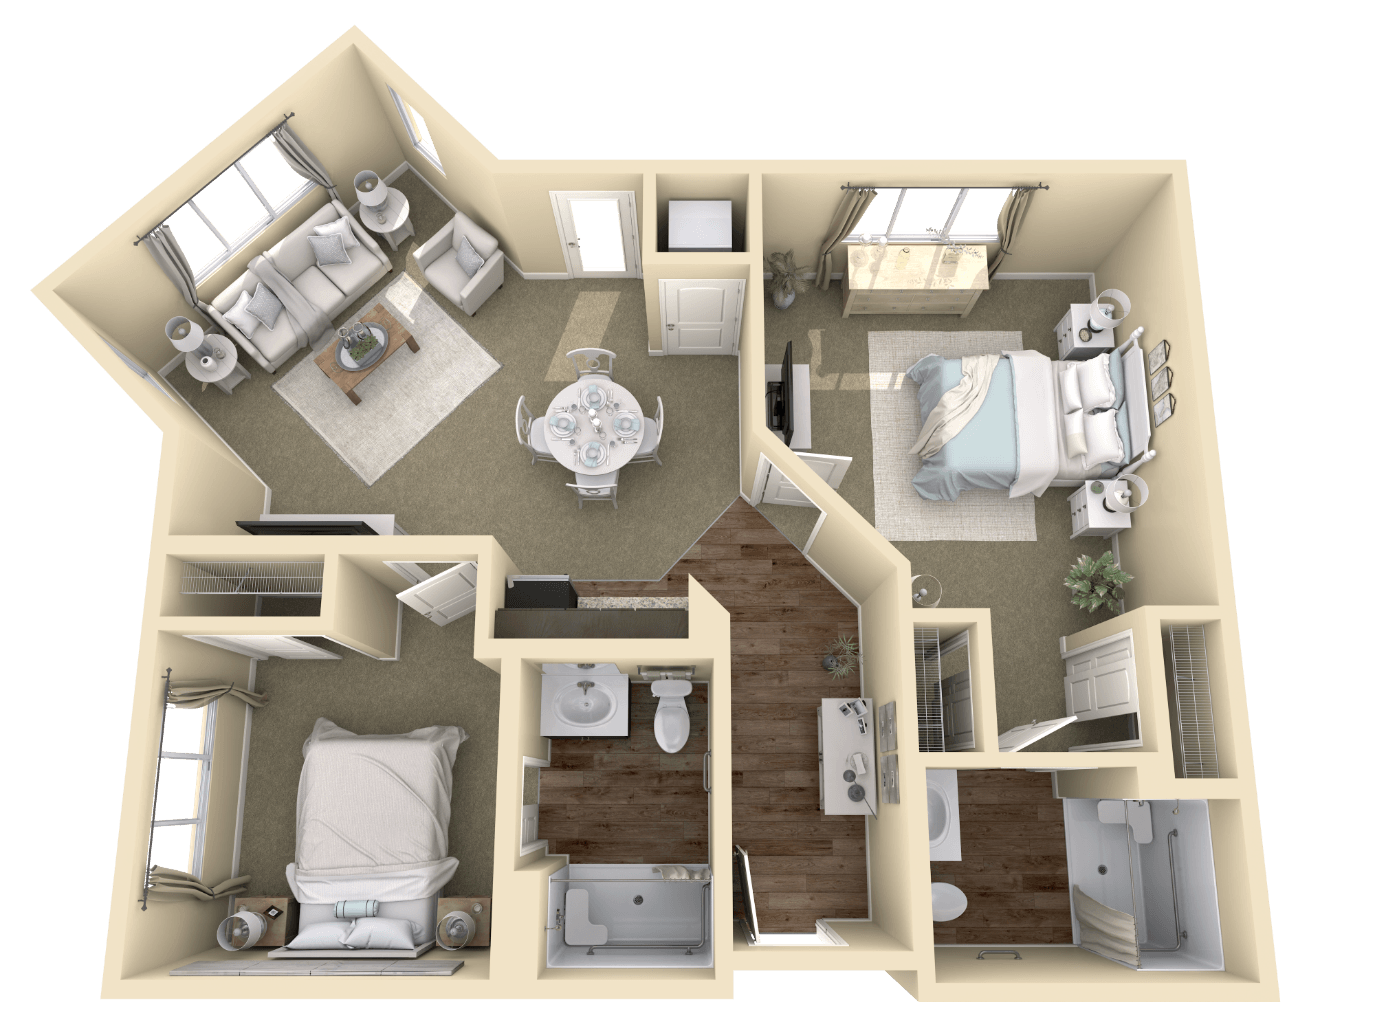 3d Floor Plans Sims House Design Small House Design Plans Small House Plans